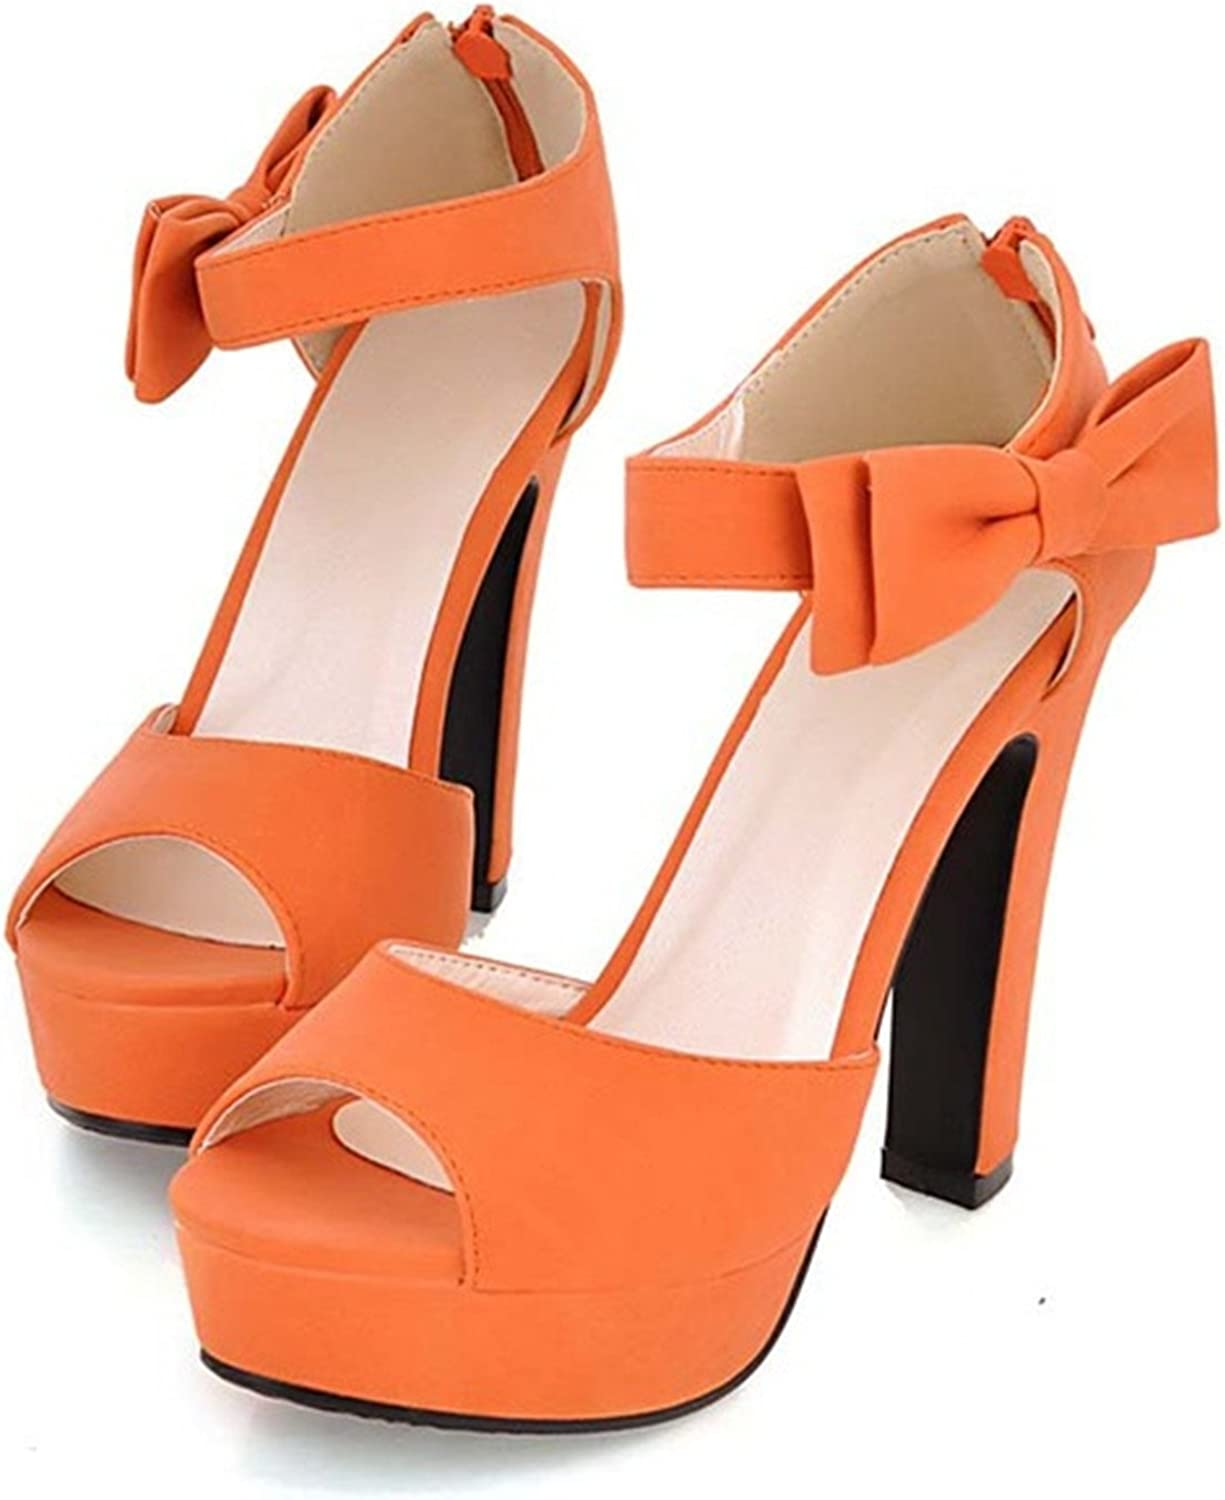 Ladiamonddiva Sandals Pumps Black Hot New Summer Peep Toe Ankle Strap Sweet High Heel Sandals Platform shoes Woman Bowties Charms Sandals Pumps orange 10.5